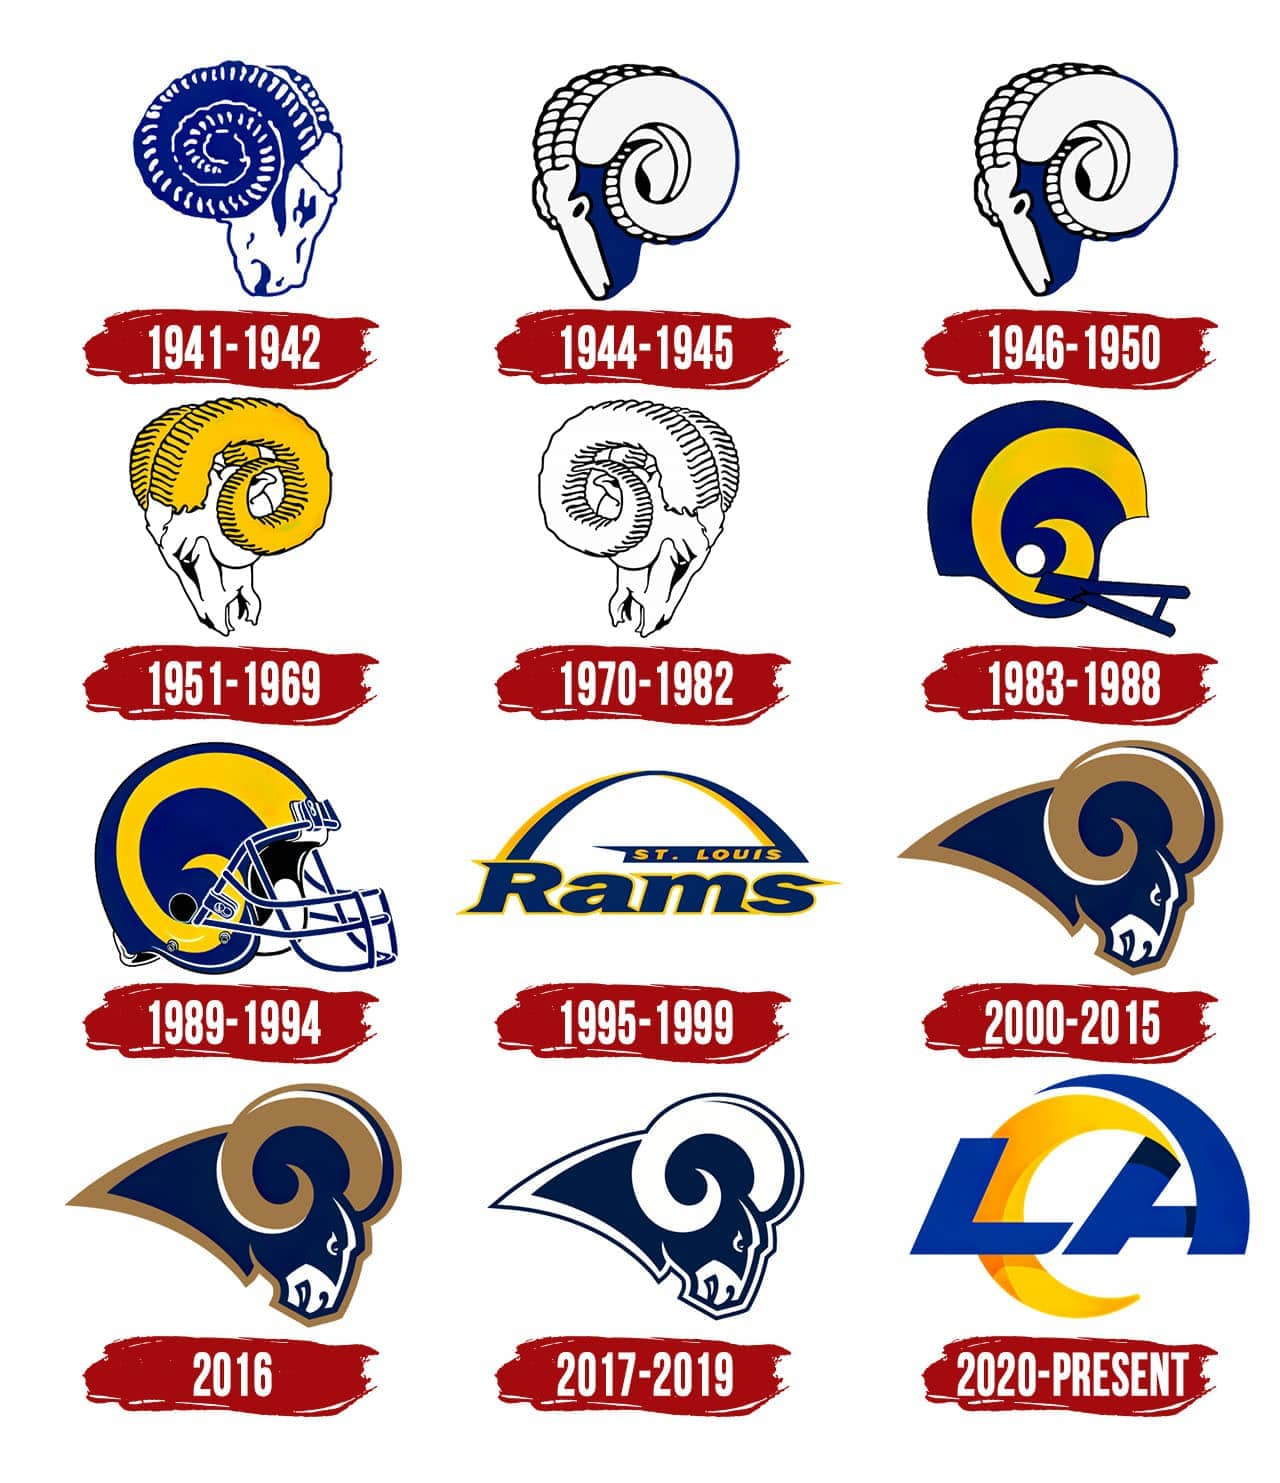 Los Angeles Rams Logo The Most Famous Brands And Company Logos In The World